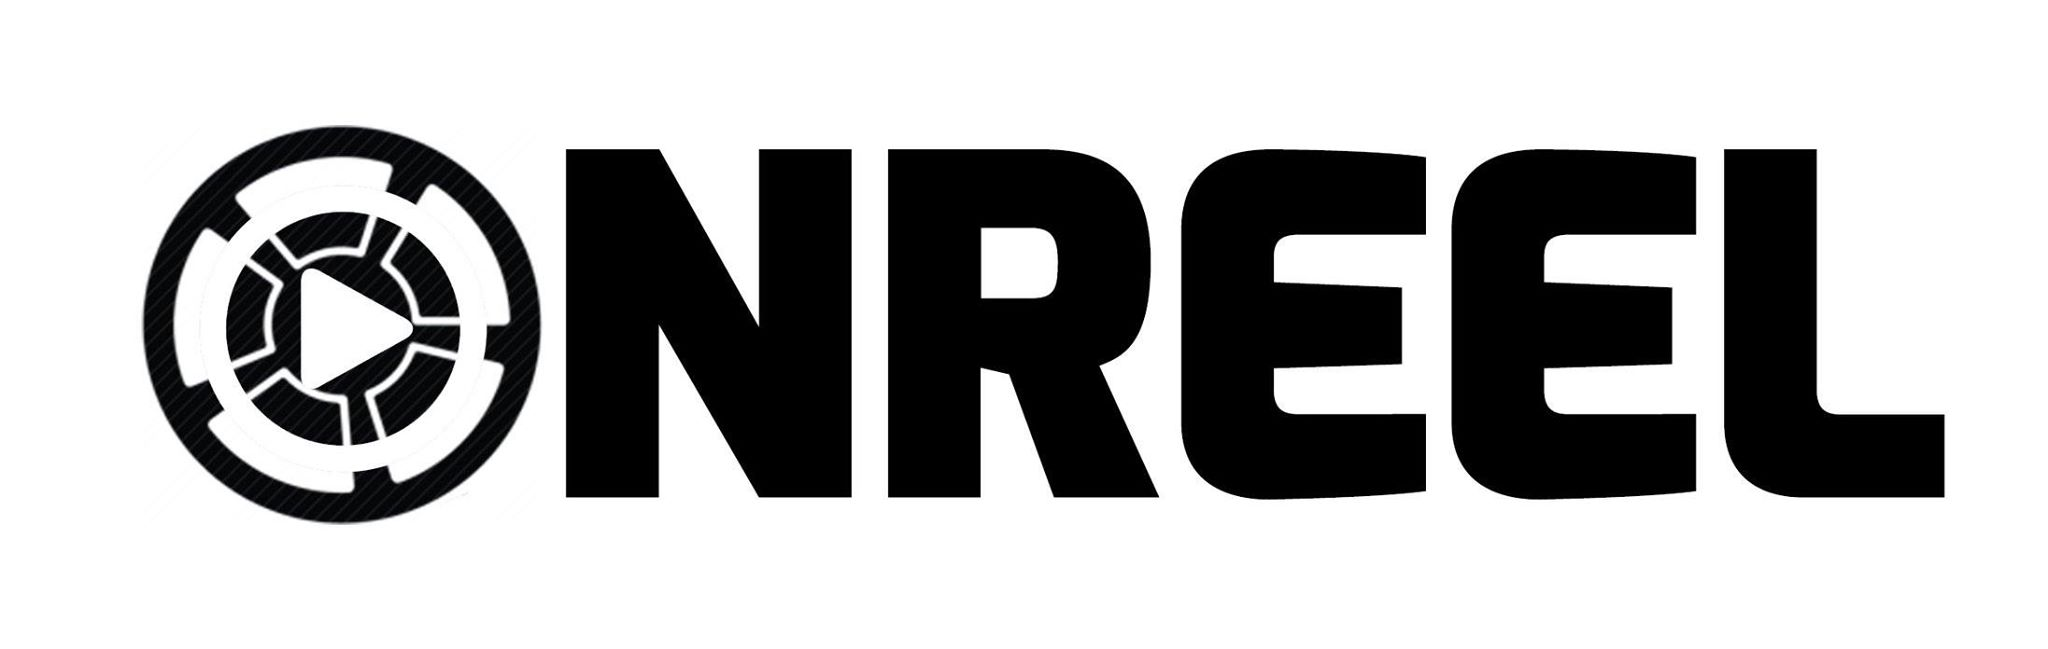 Different iterations of what the logo for Onreel might look like.